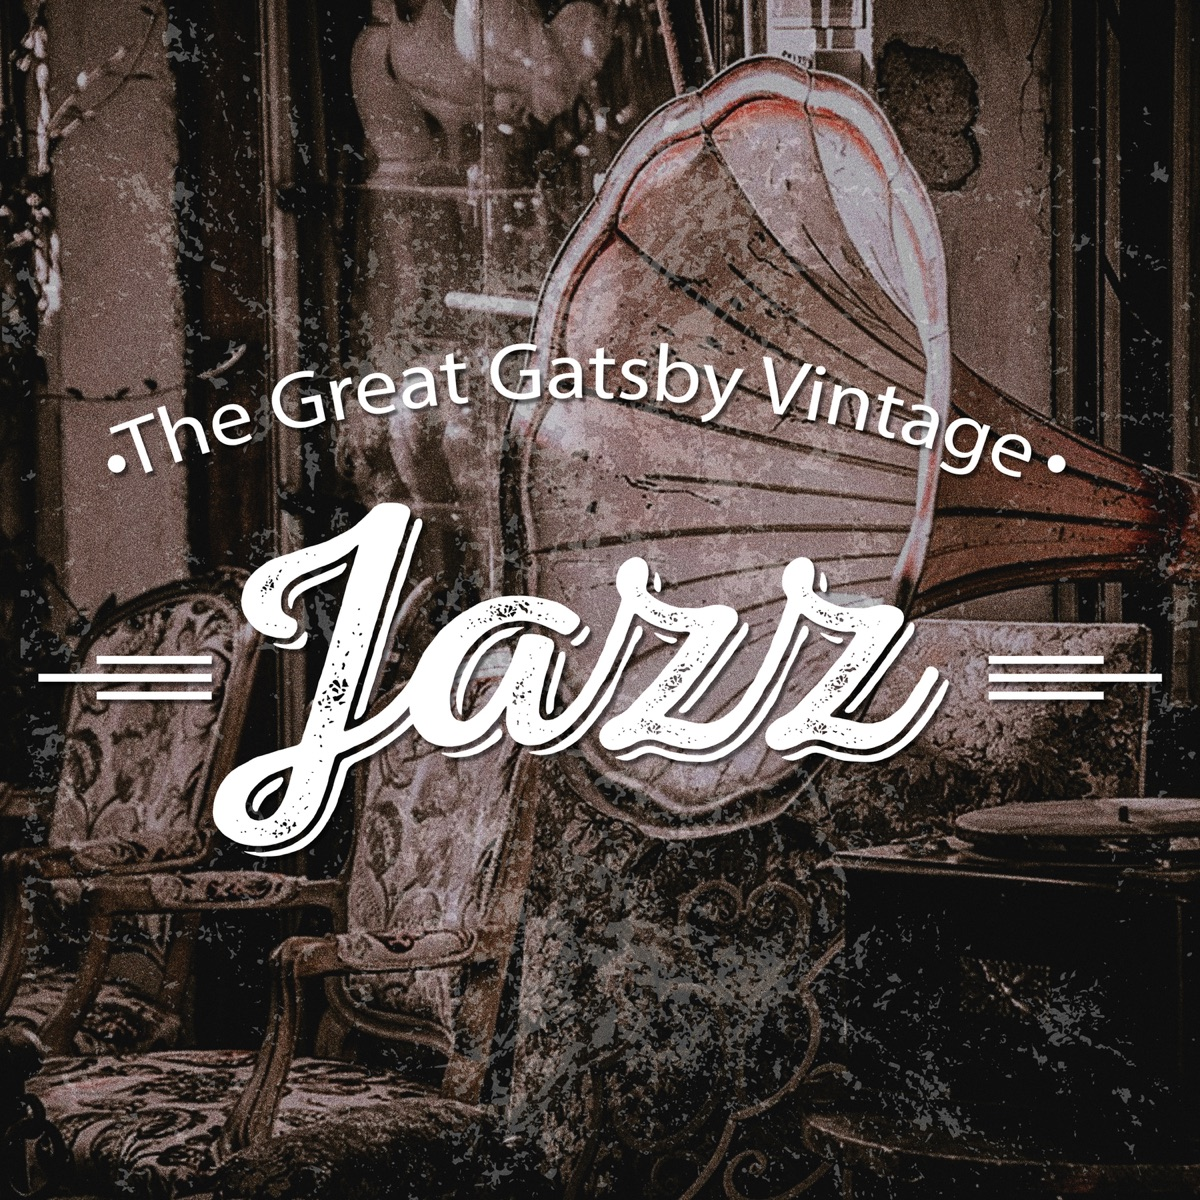 The Great Gatsby Vintage Jazz: Music for 20's Themed Party